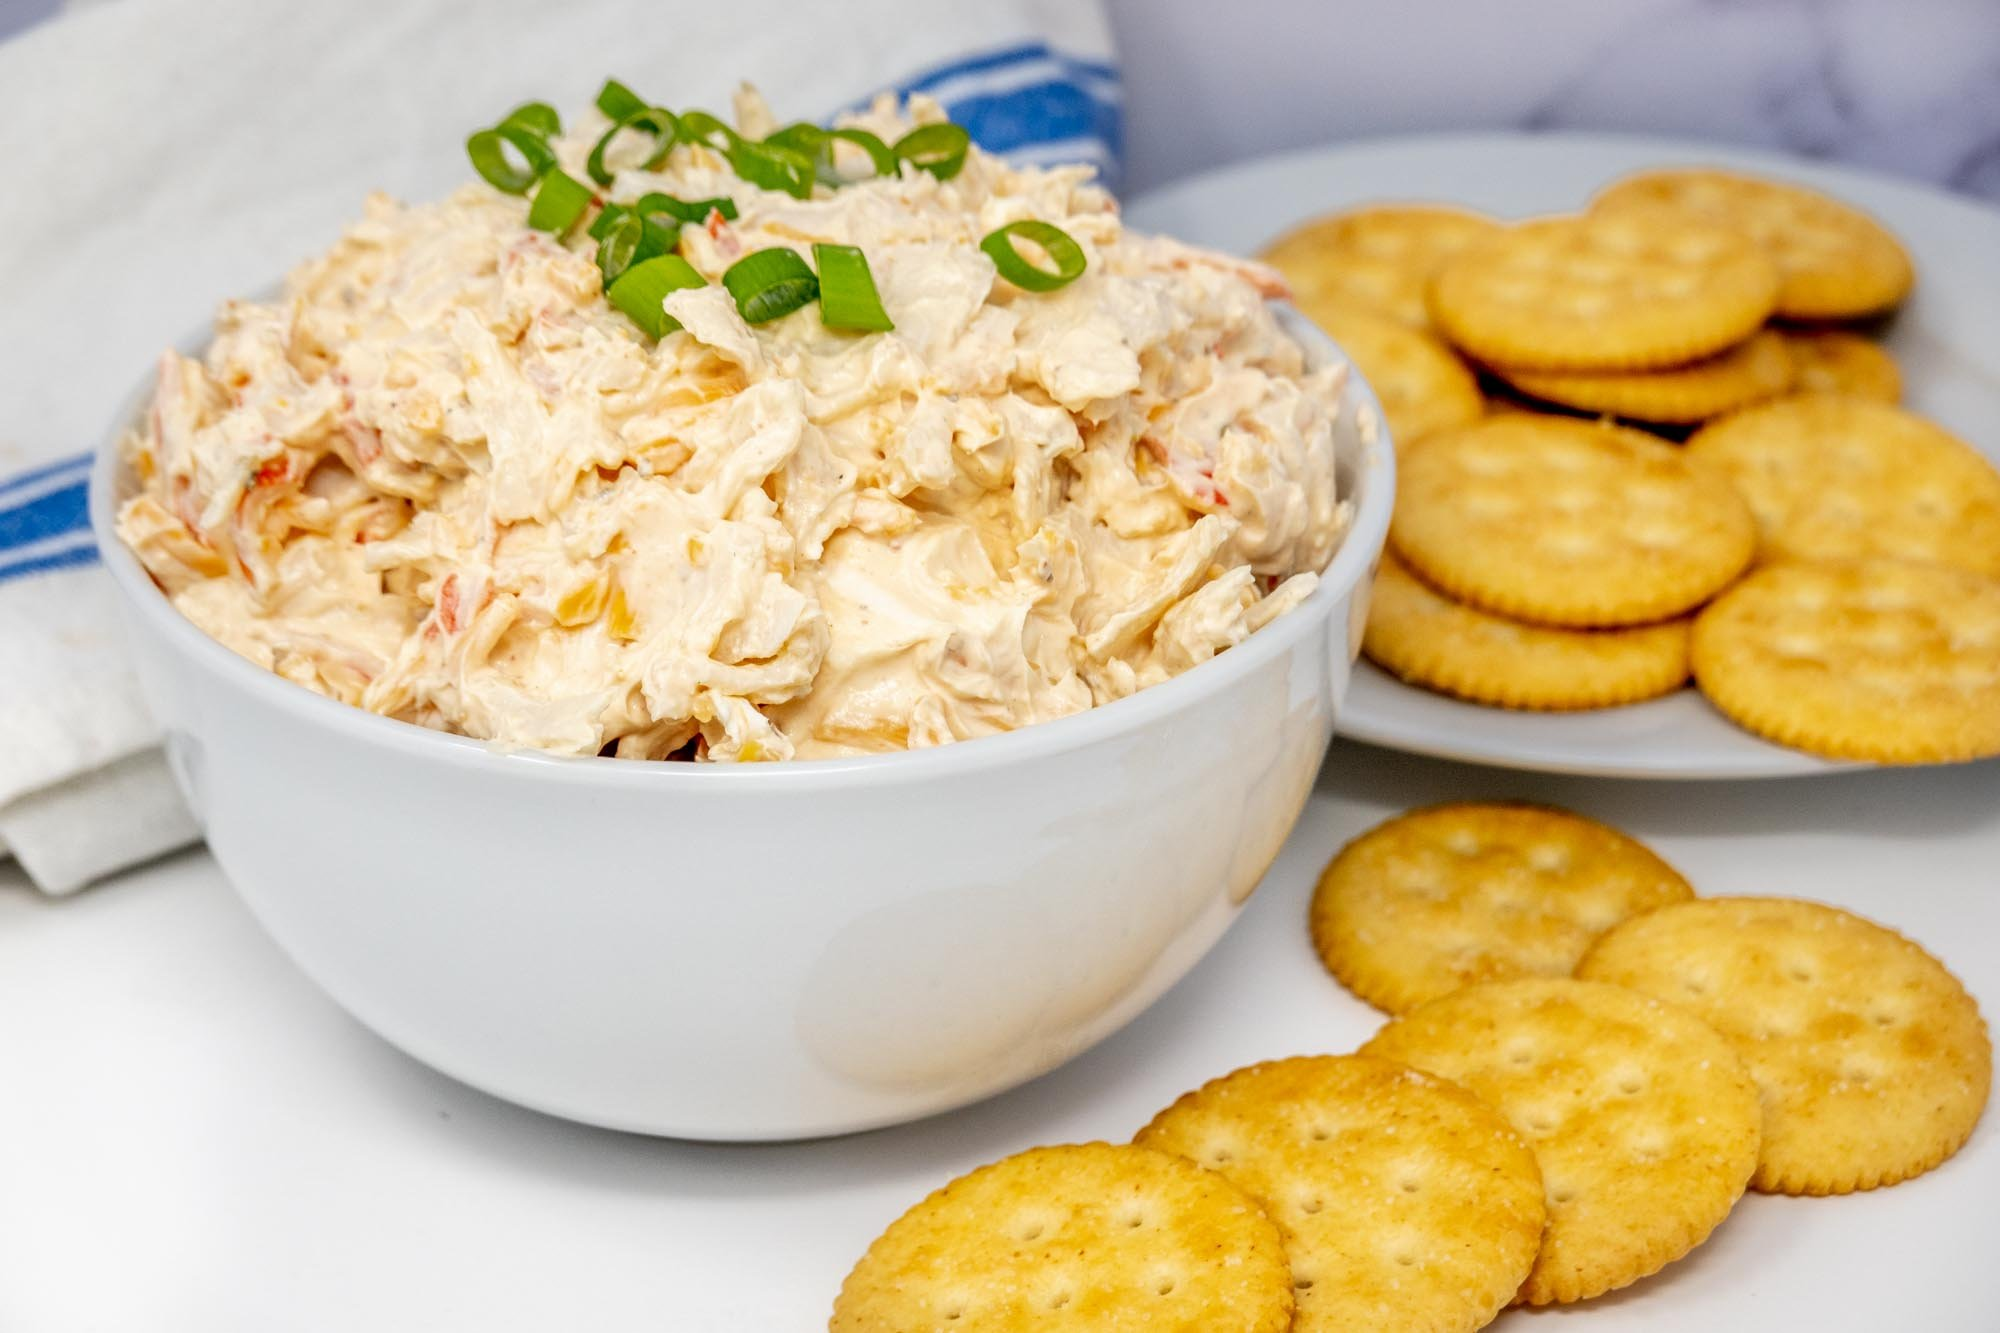 Bowl of crab dip topped with scallions beside a pile of Ritz crackers